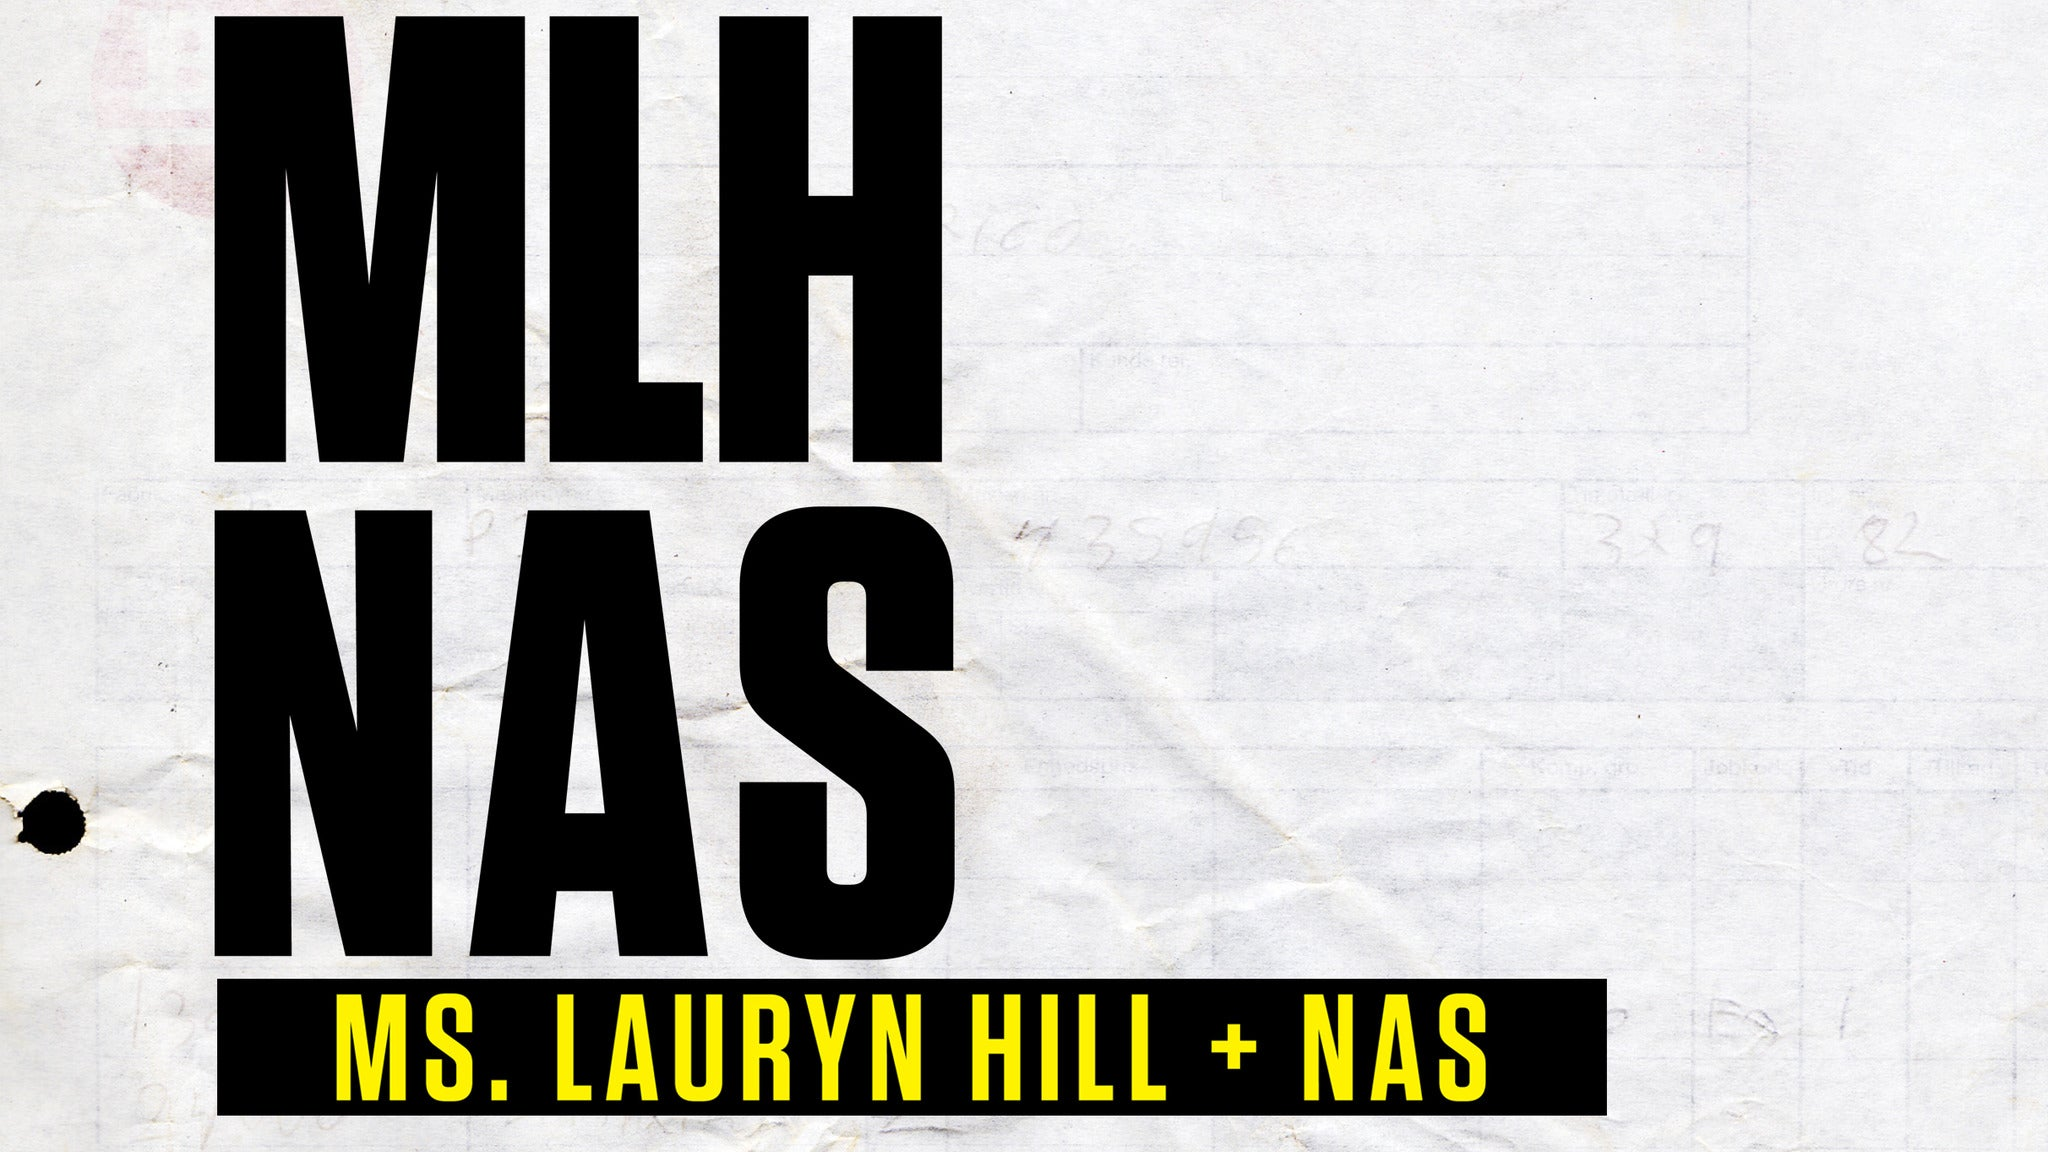 Premium Box Seats: Ms. Lauryn Hill & Nas